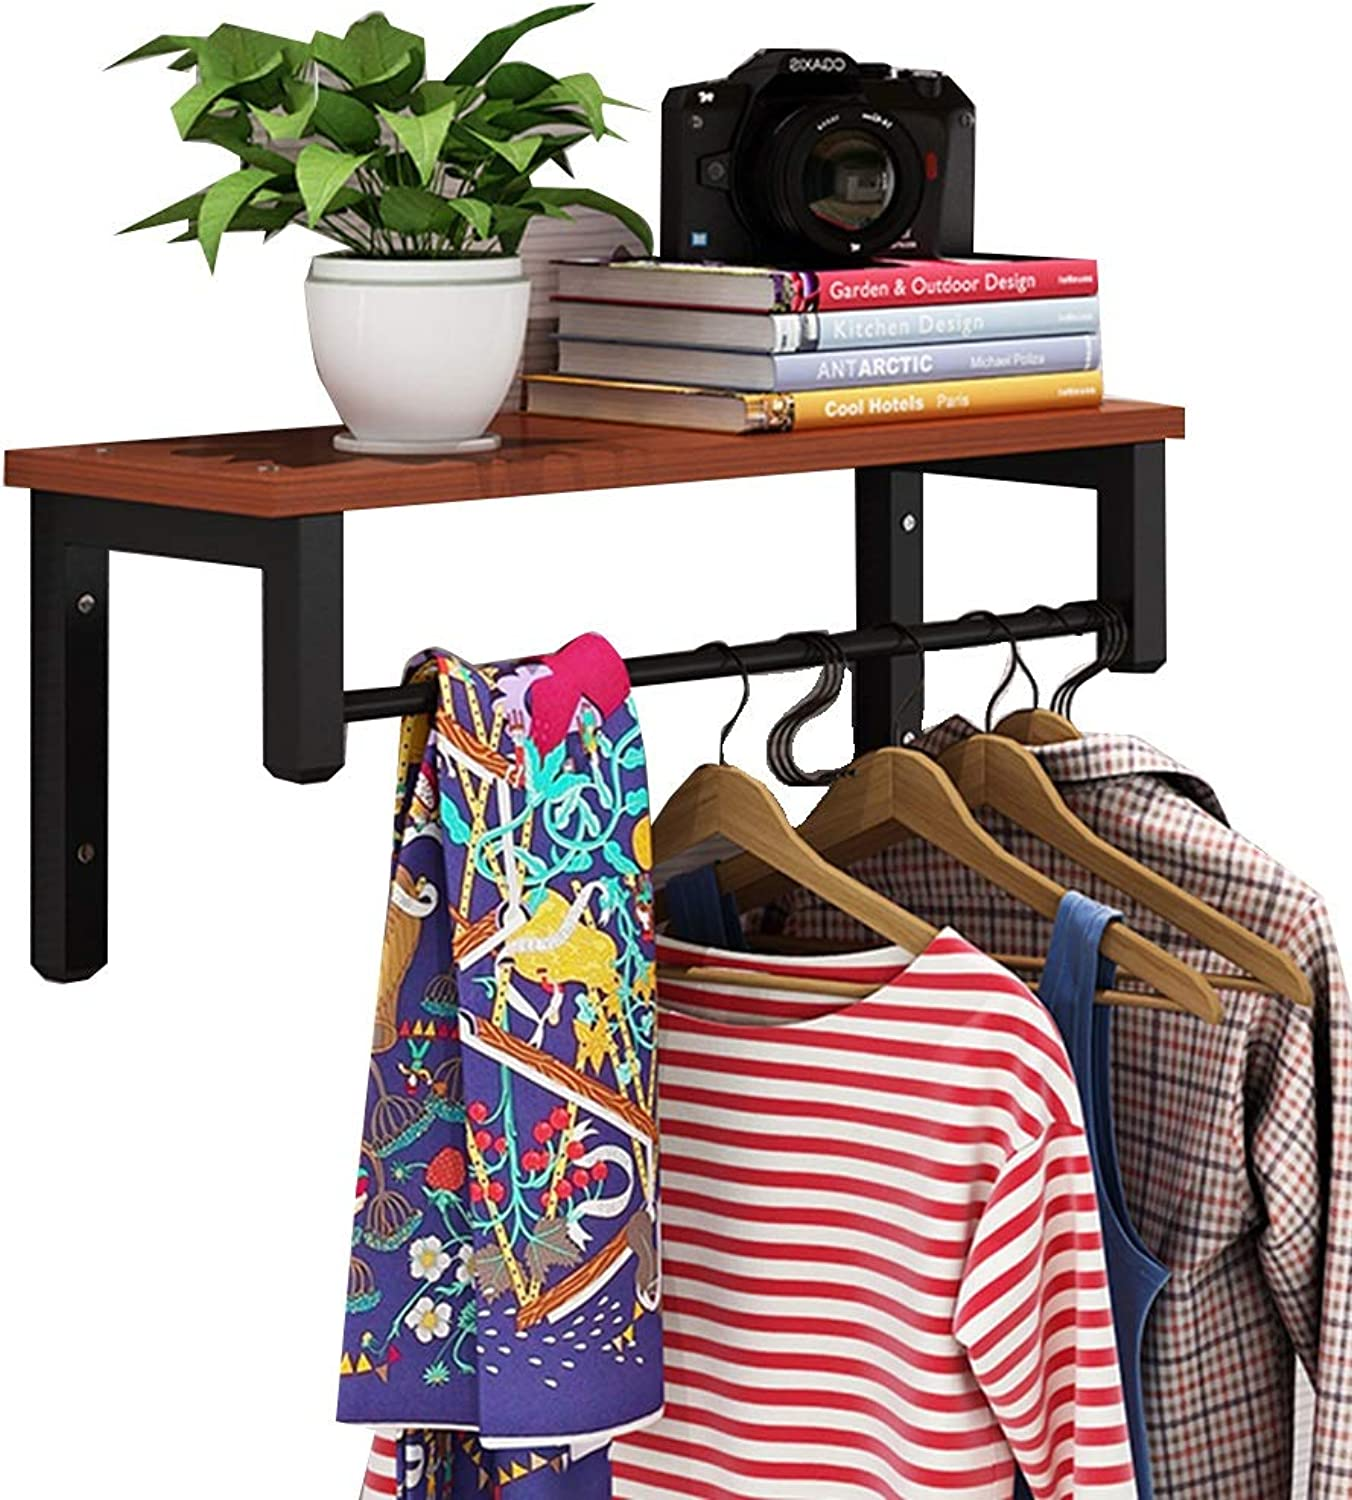 LIANGLIANG Wall Mounted Coat Rack Hanger Living Room Against The Wall Storage Display Stand Multifunction Hanger Solid Wood Stable, 10 colors, 3 Sizes (color   Brown A, Size   40x20x22.5cm)